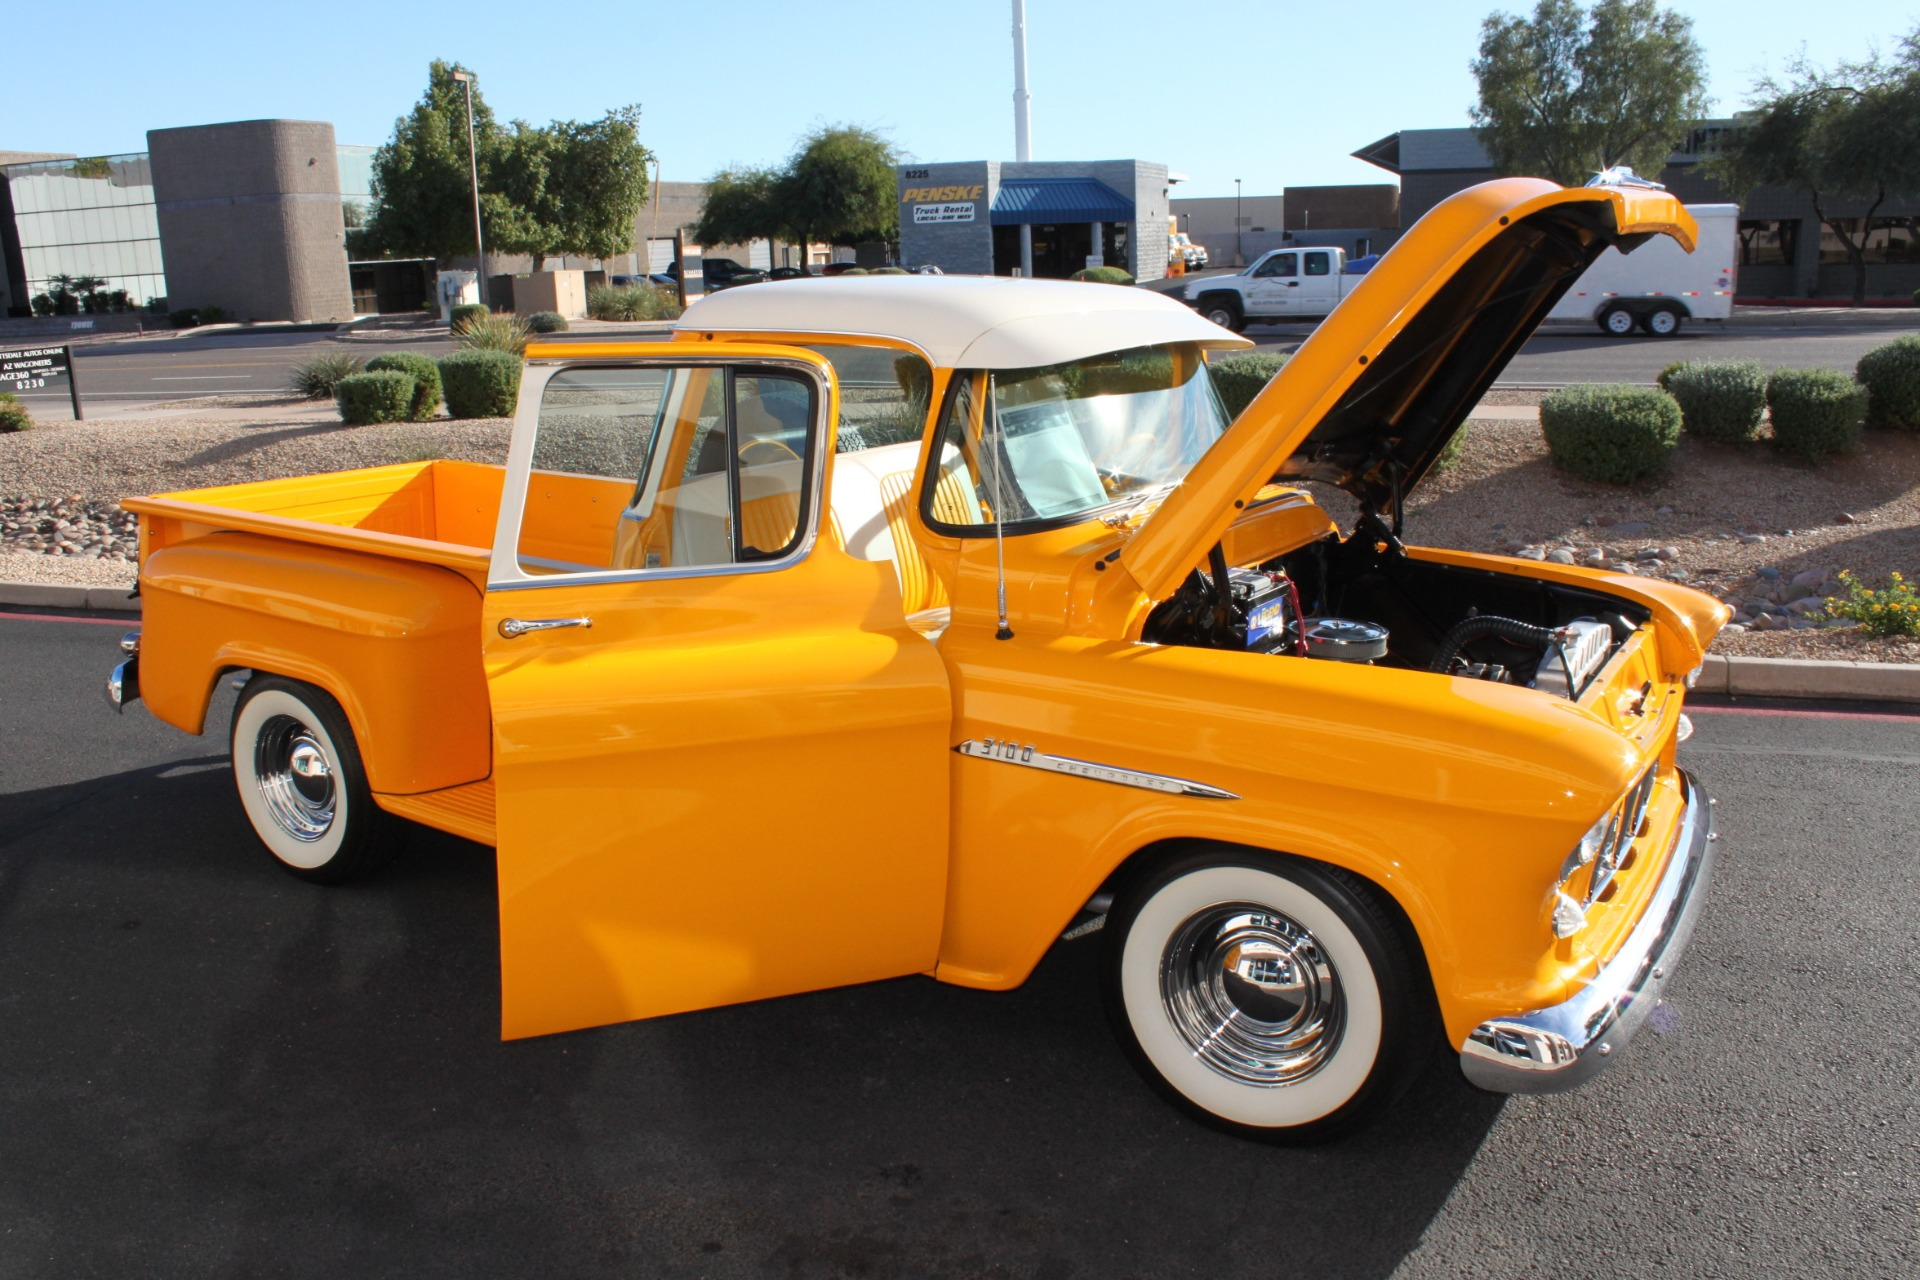 Used-1955-Chevrolet-3100-Pickup-Truck-Tesla